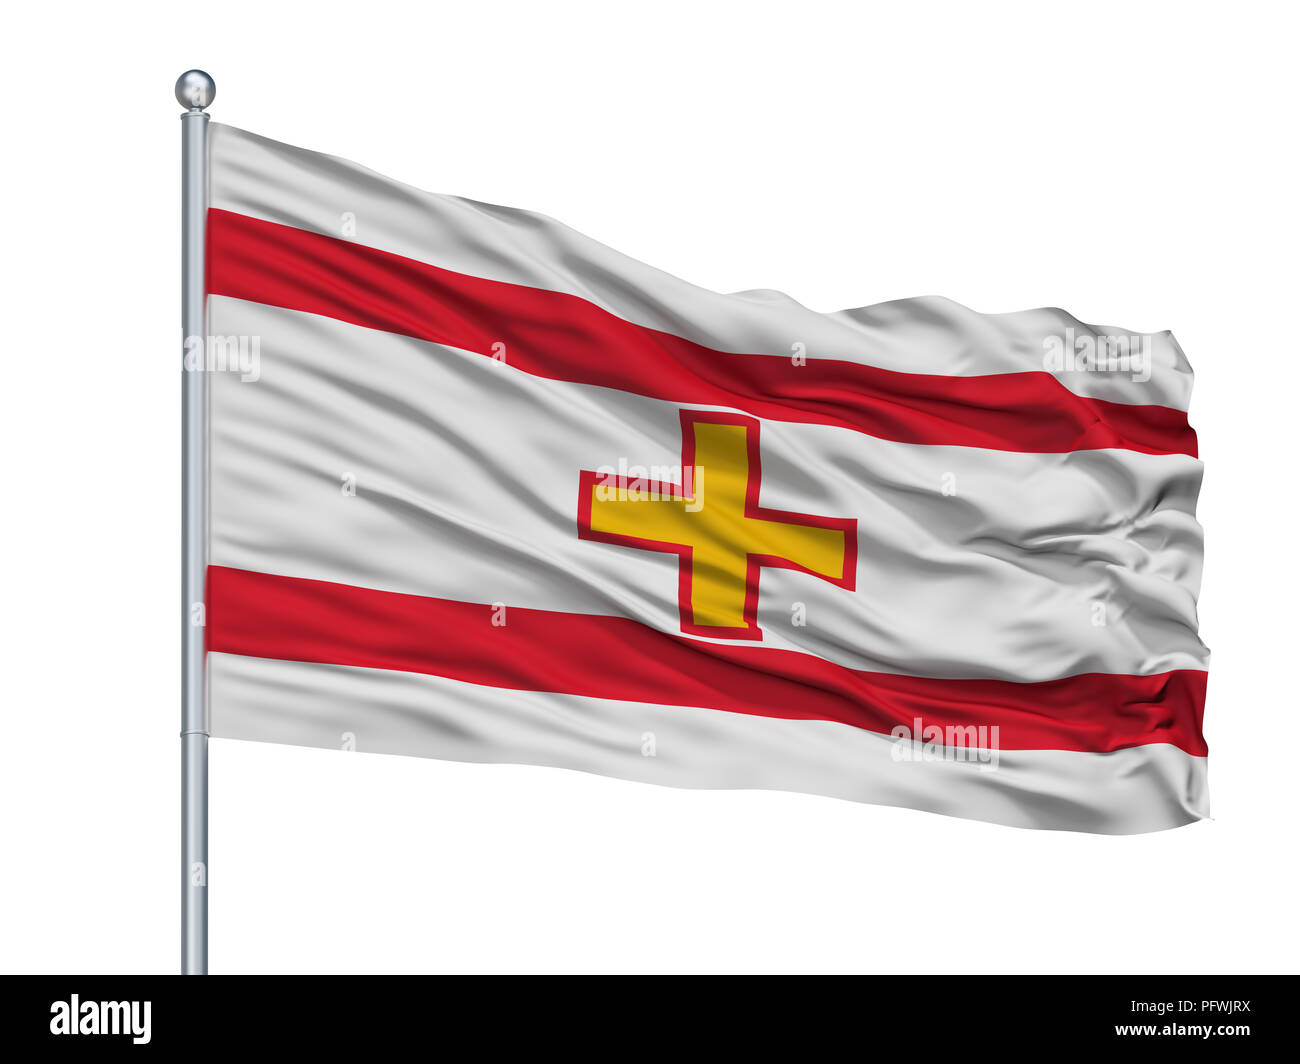 Kota Kinabalu City Flag On Flagpole, Malaysia, Isolated On White Background - Stock Image